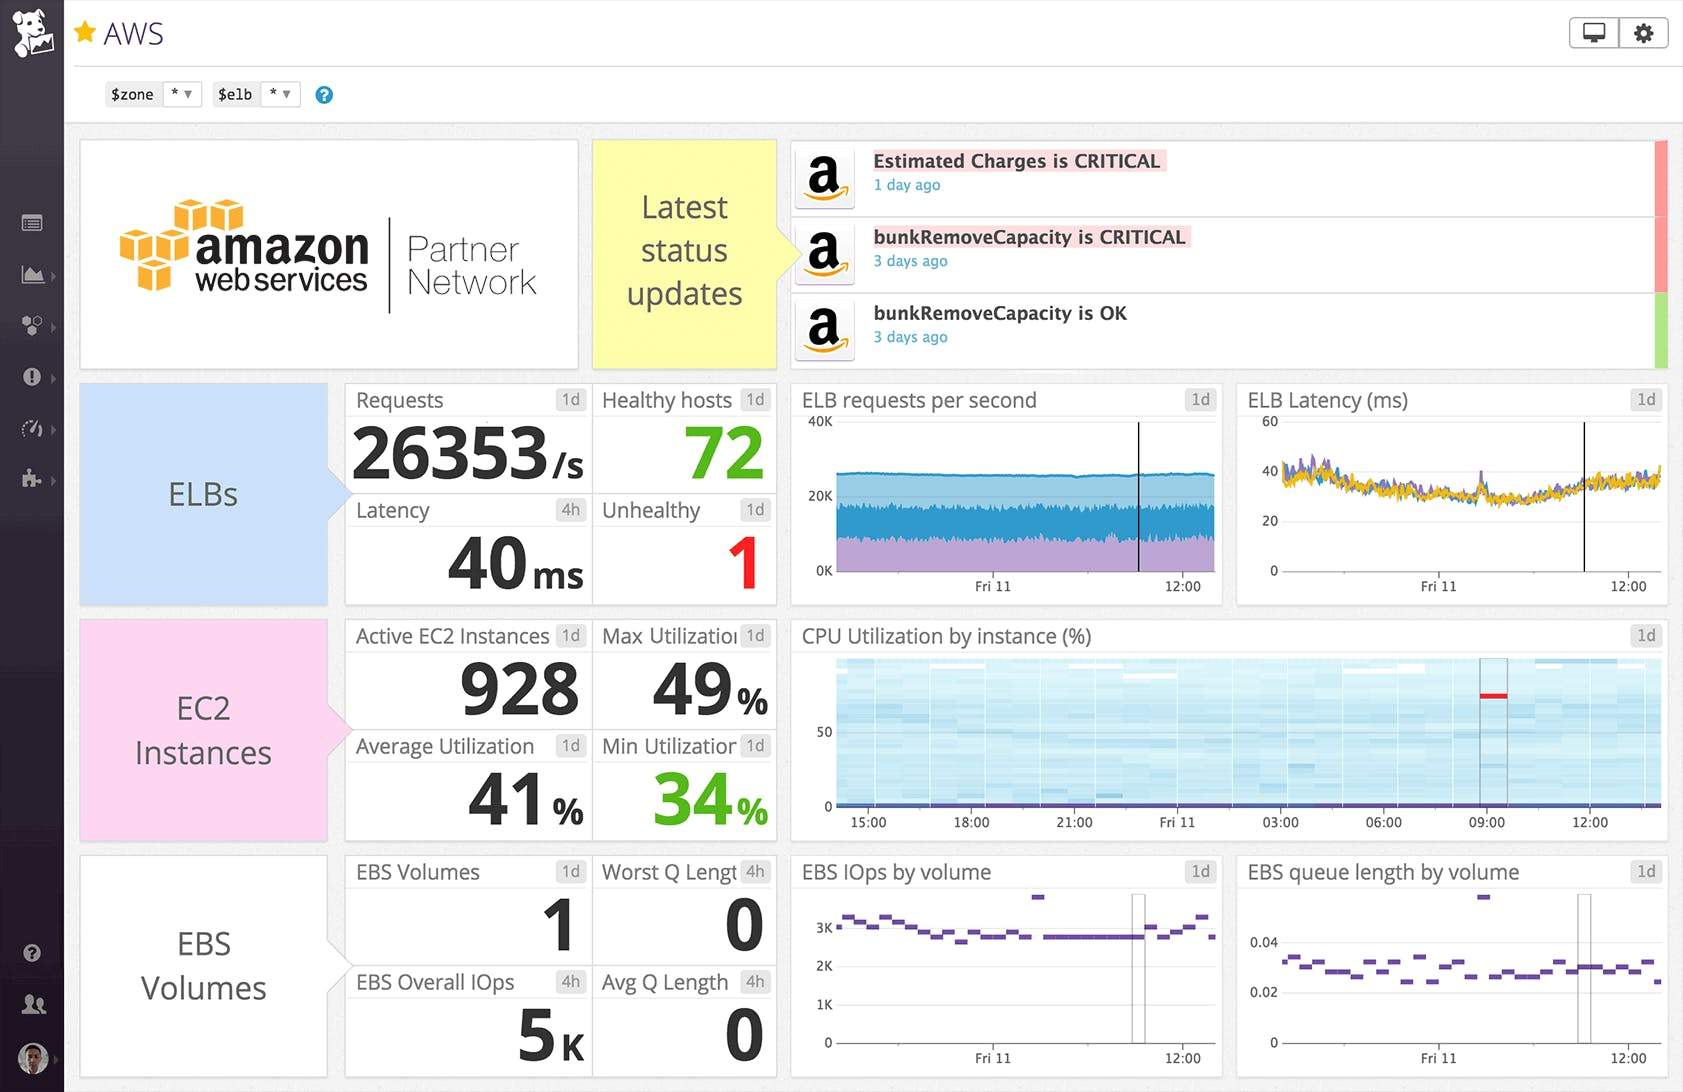 AWS_dashboard.png